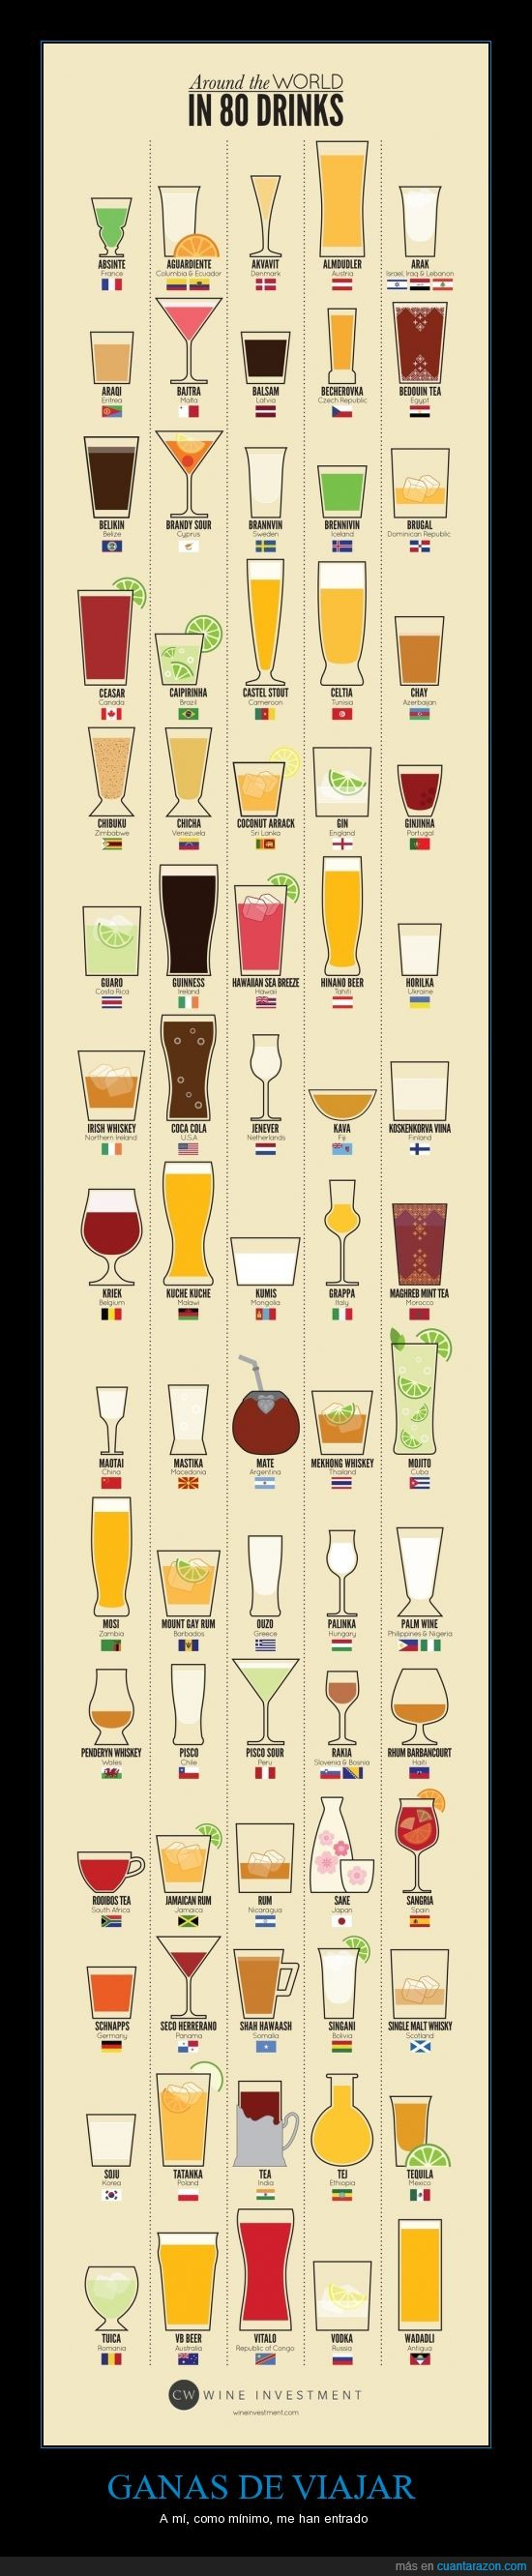 alcohol,bebidas,cocktail,mate,pais,sangria,tequila,tipos